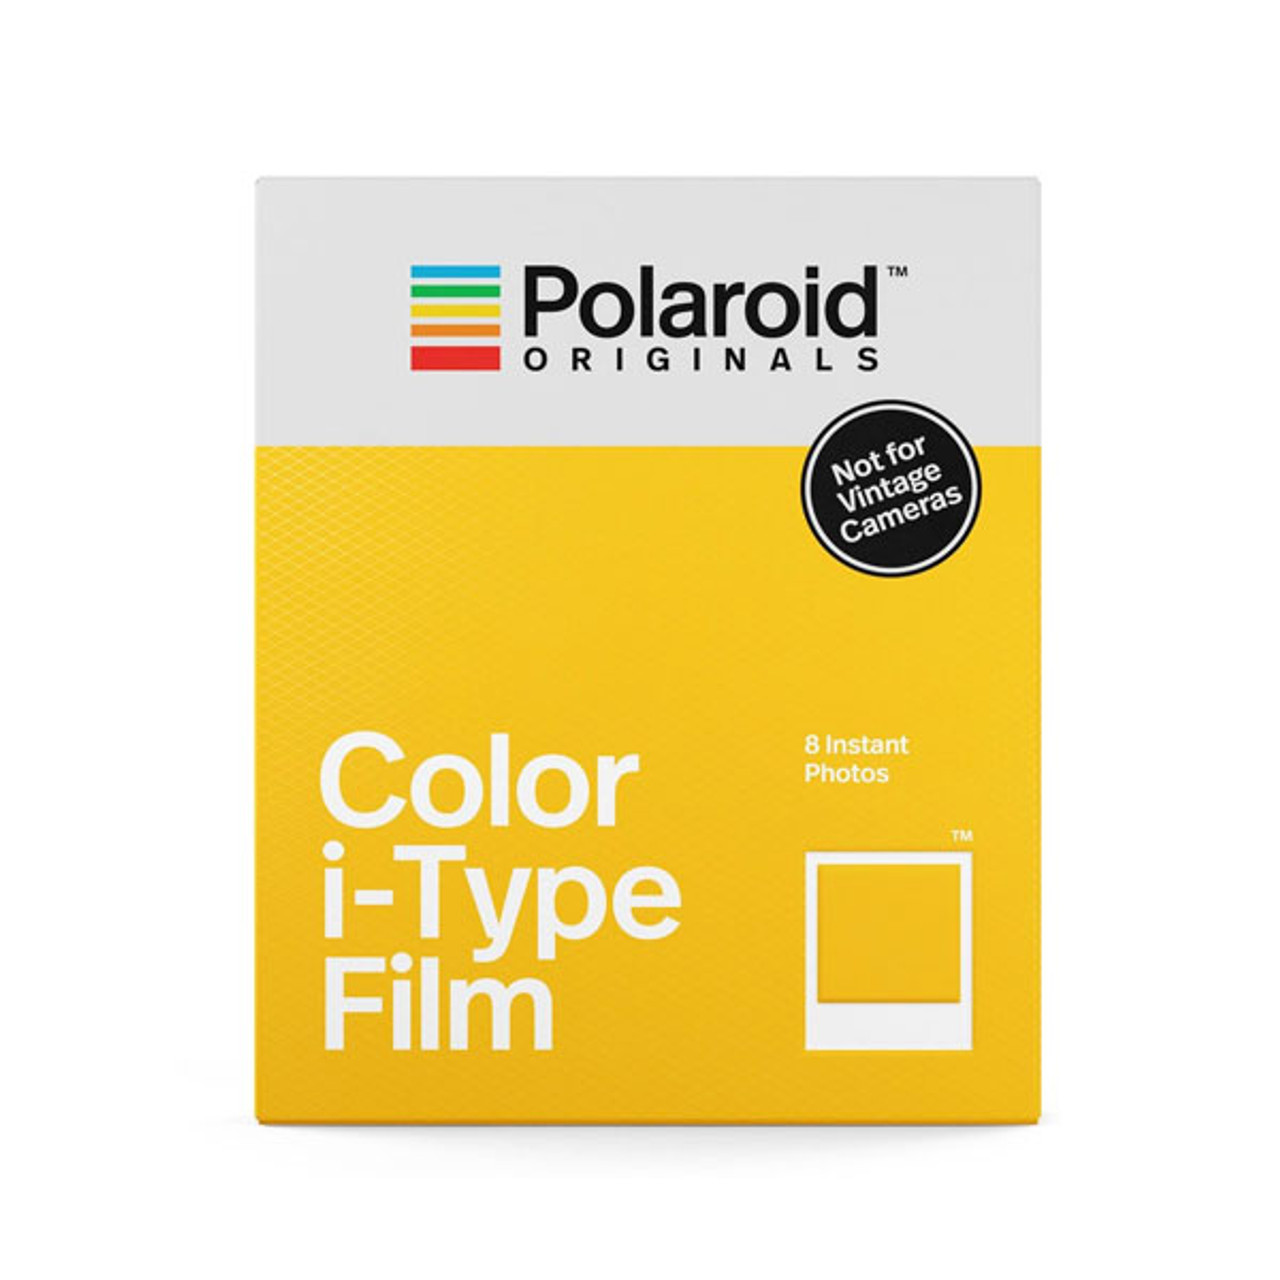 Polaroid Color Film for i-Type Cameras